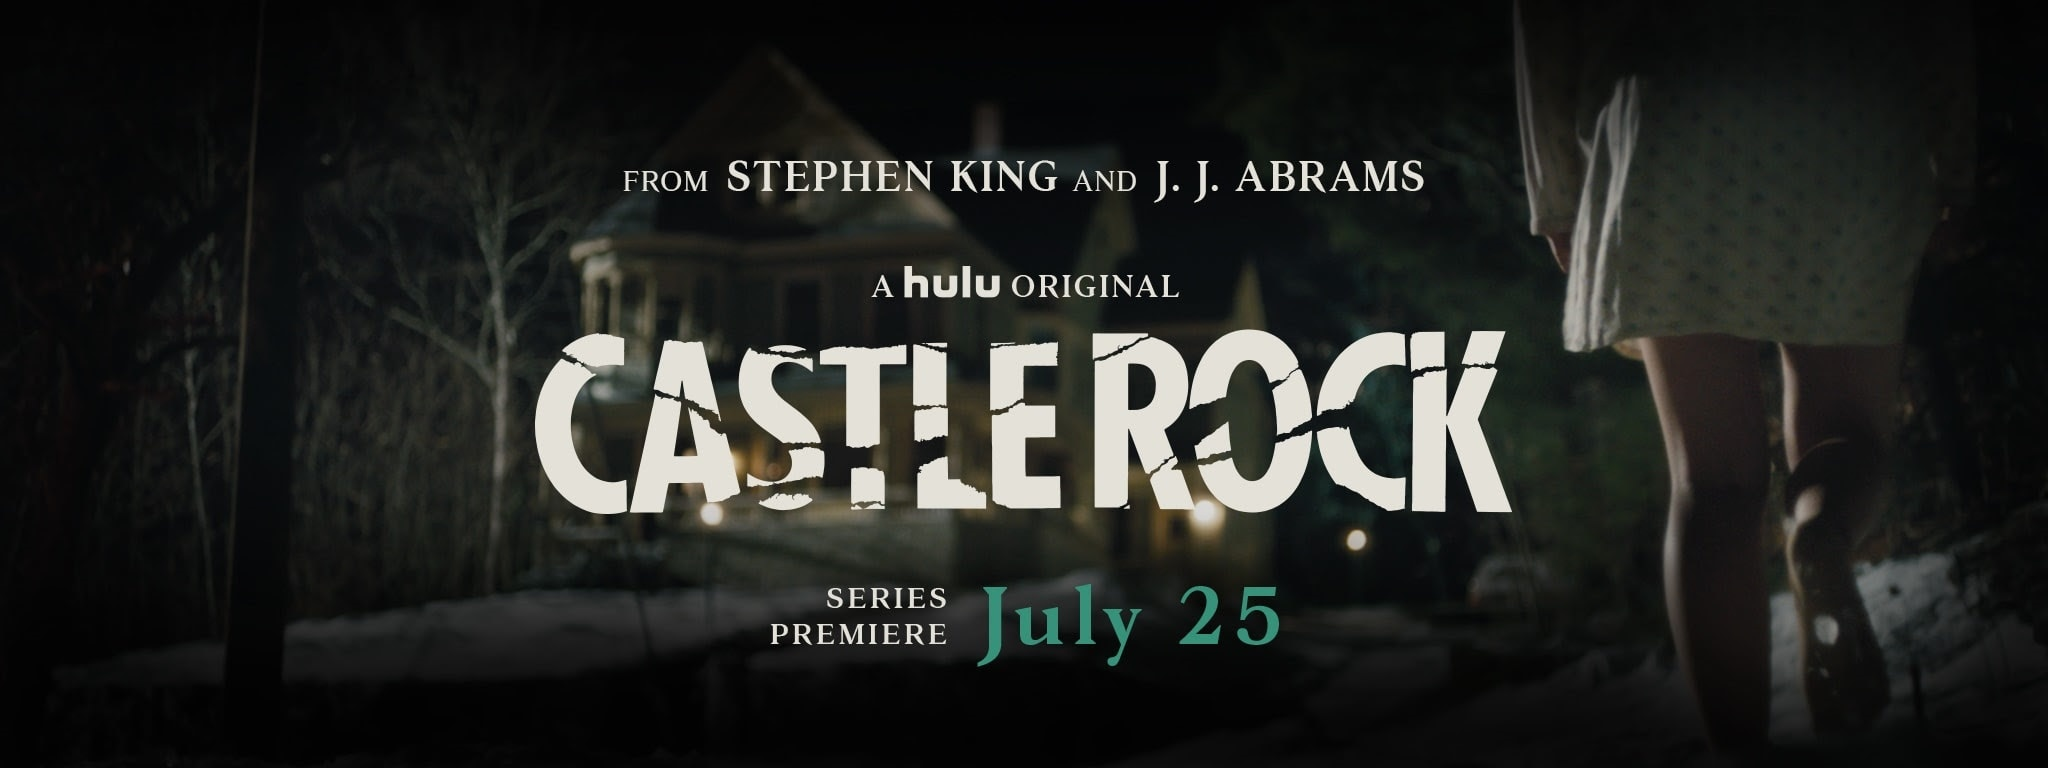 Castle Rock - Stephen King's CASTLE ROCK Premiere Date Announced!